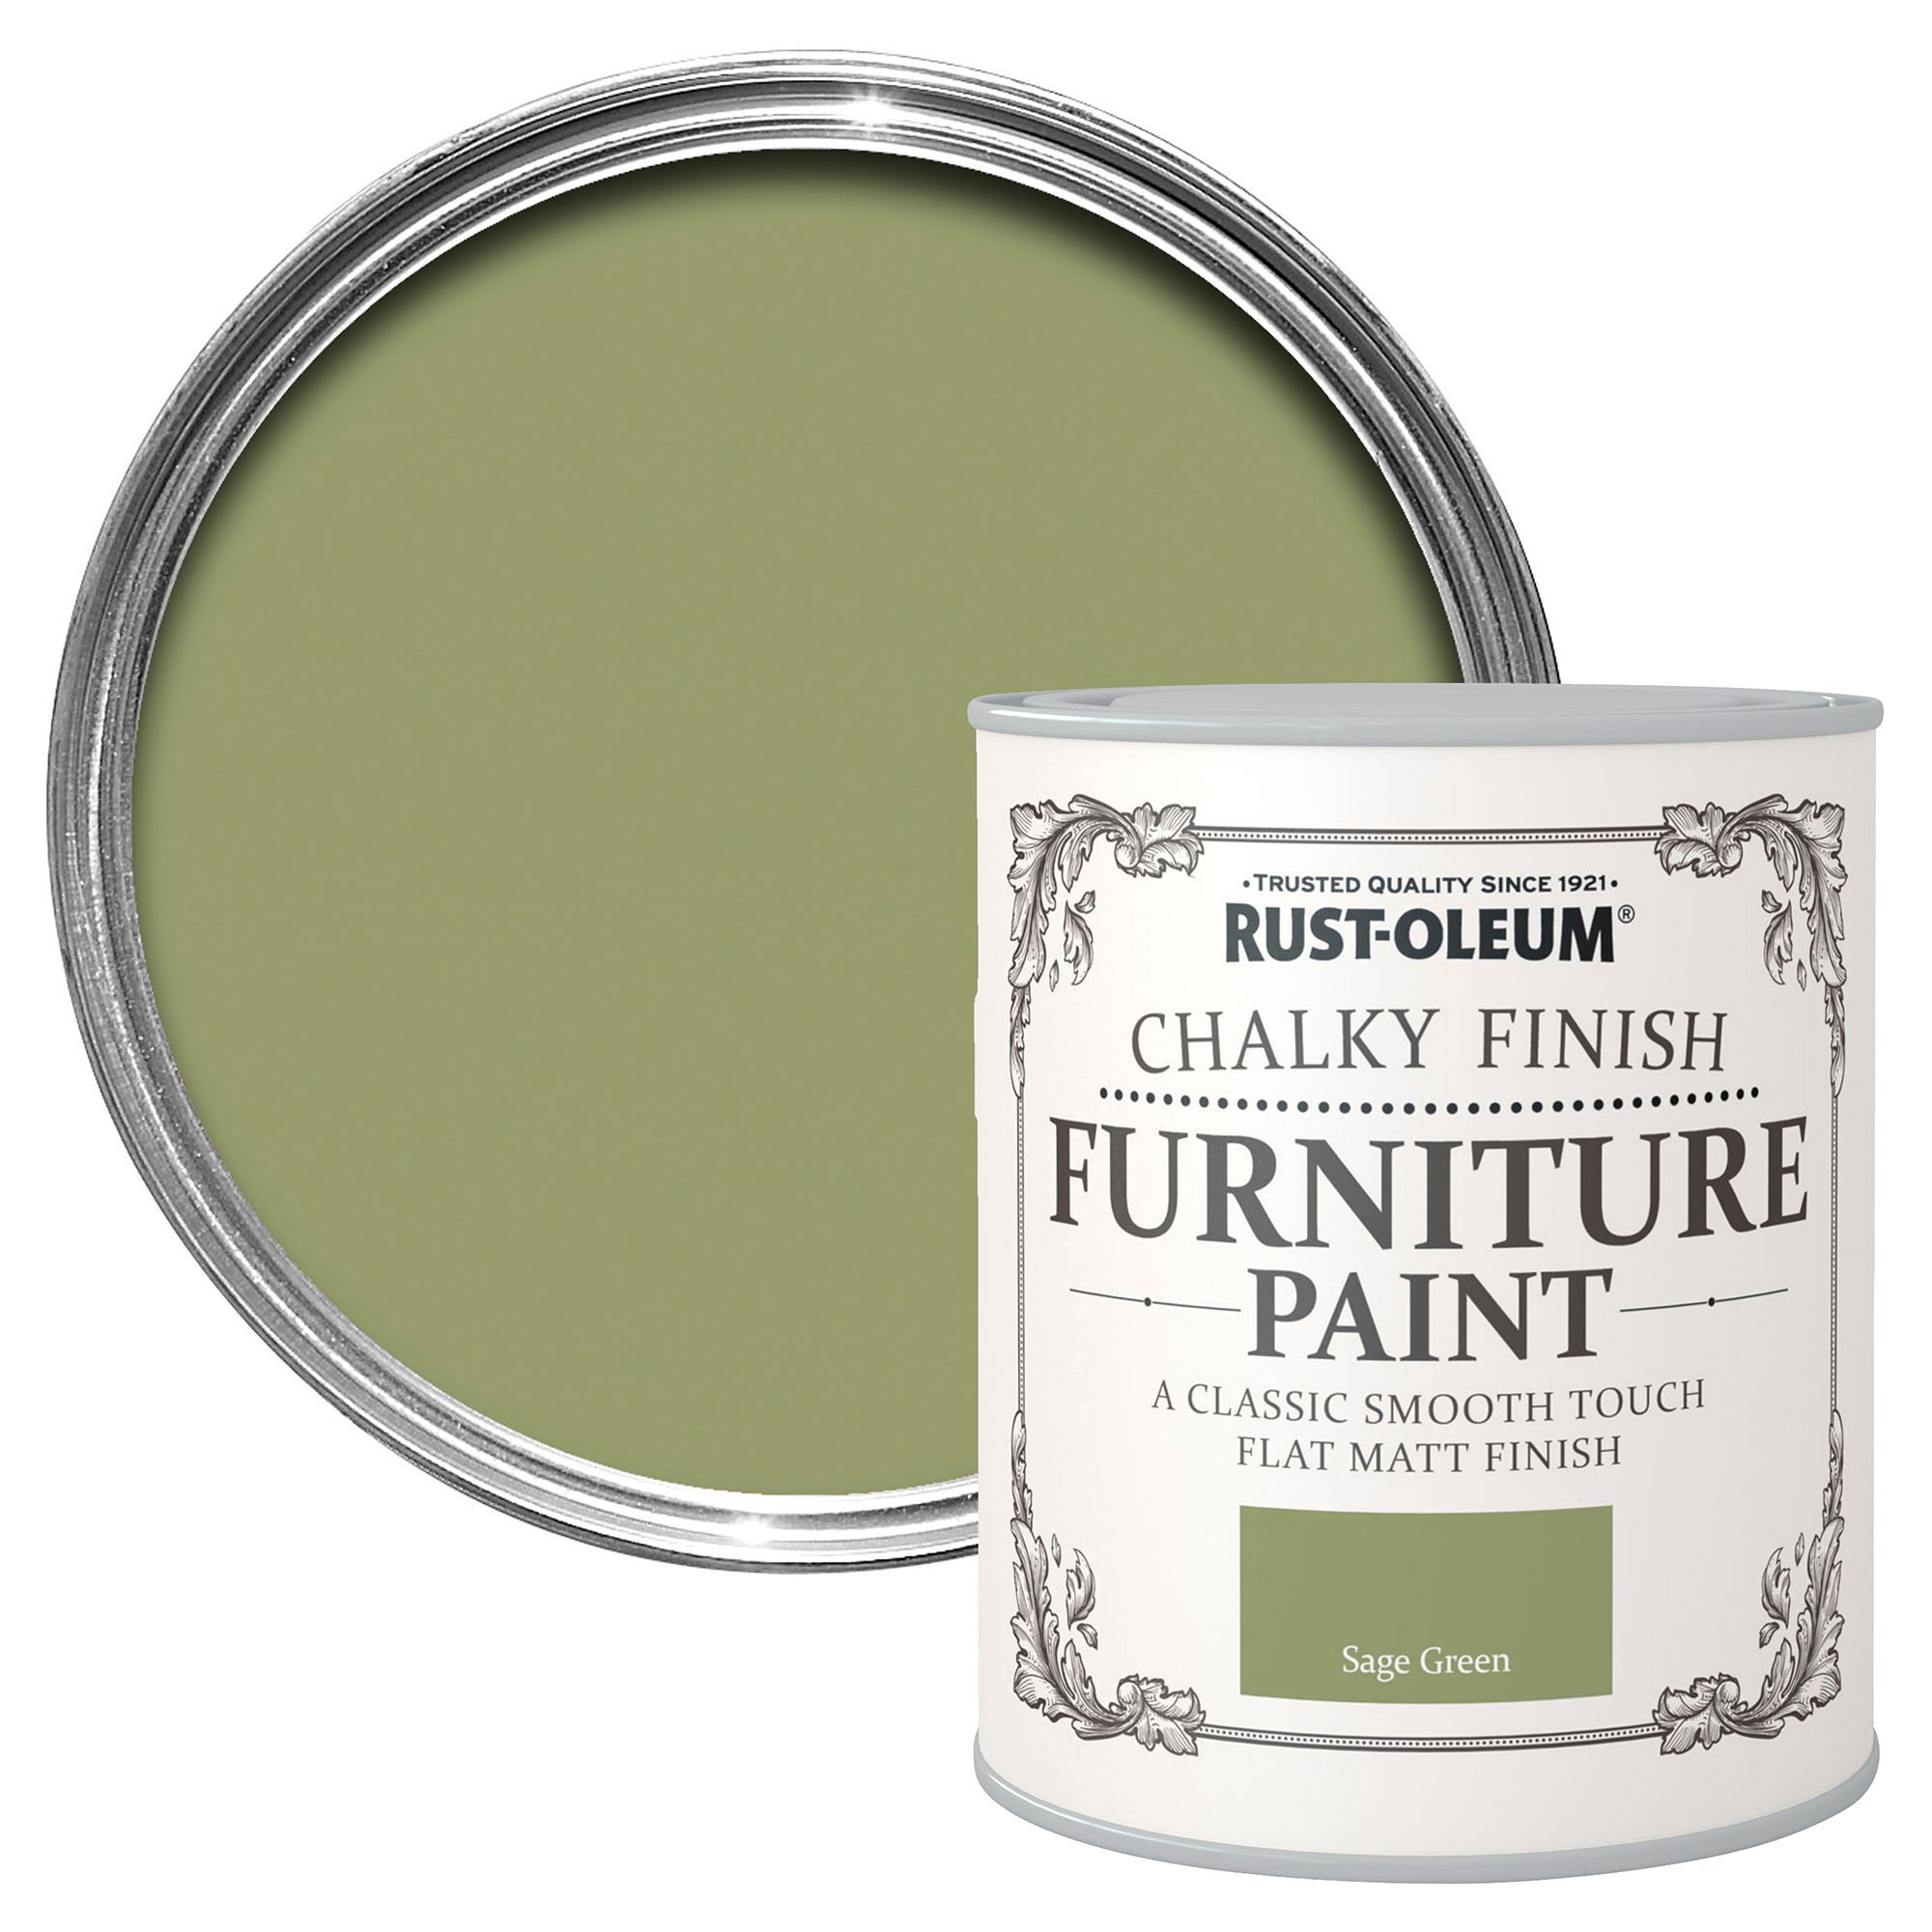 Rust-oleum Rust-oleum Sage Green Matt Furniture Paint 750 Ml